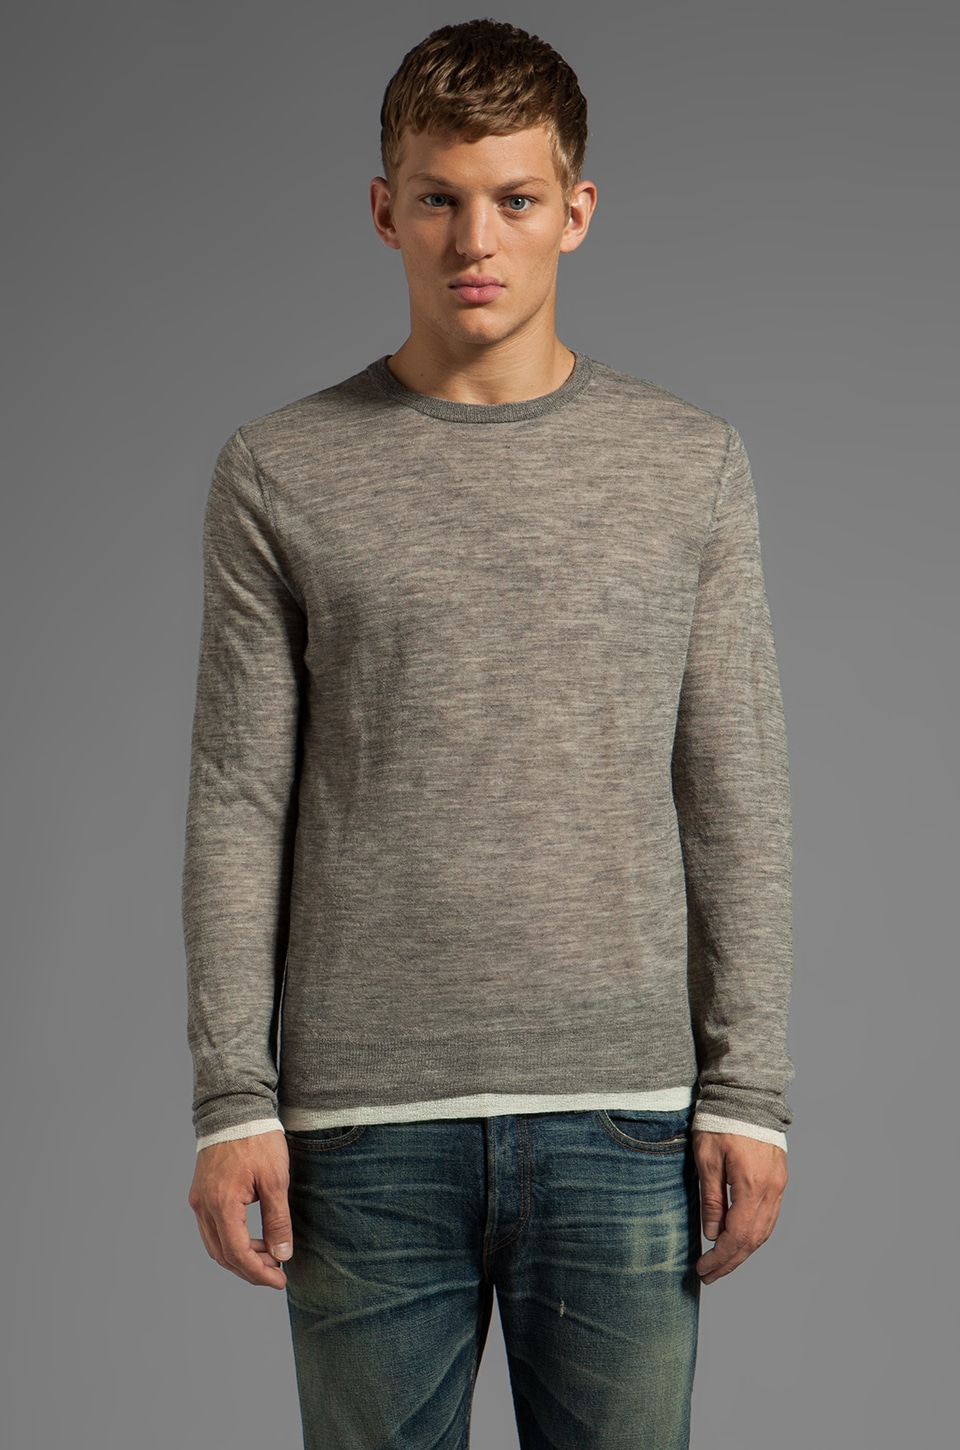 Vince Double Layer Sweater in Heather Cinder